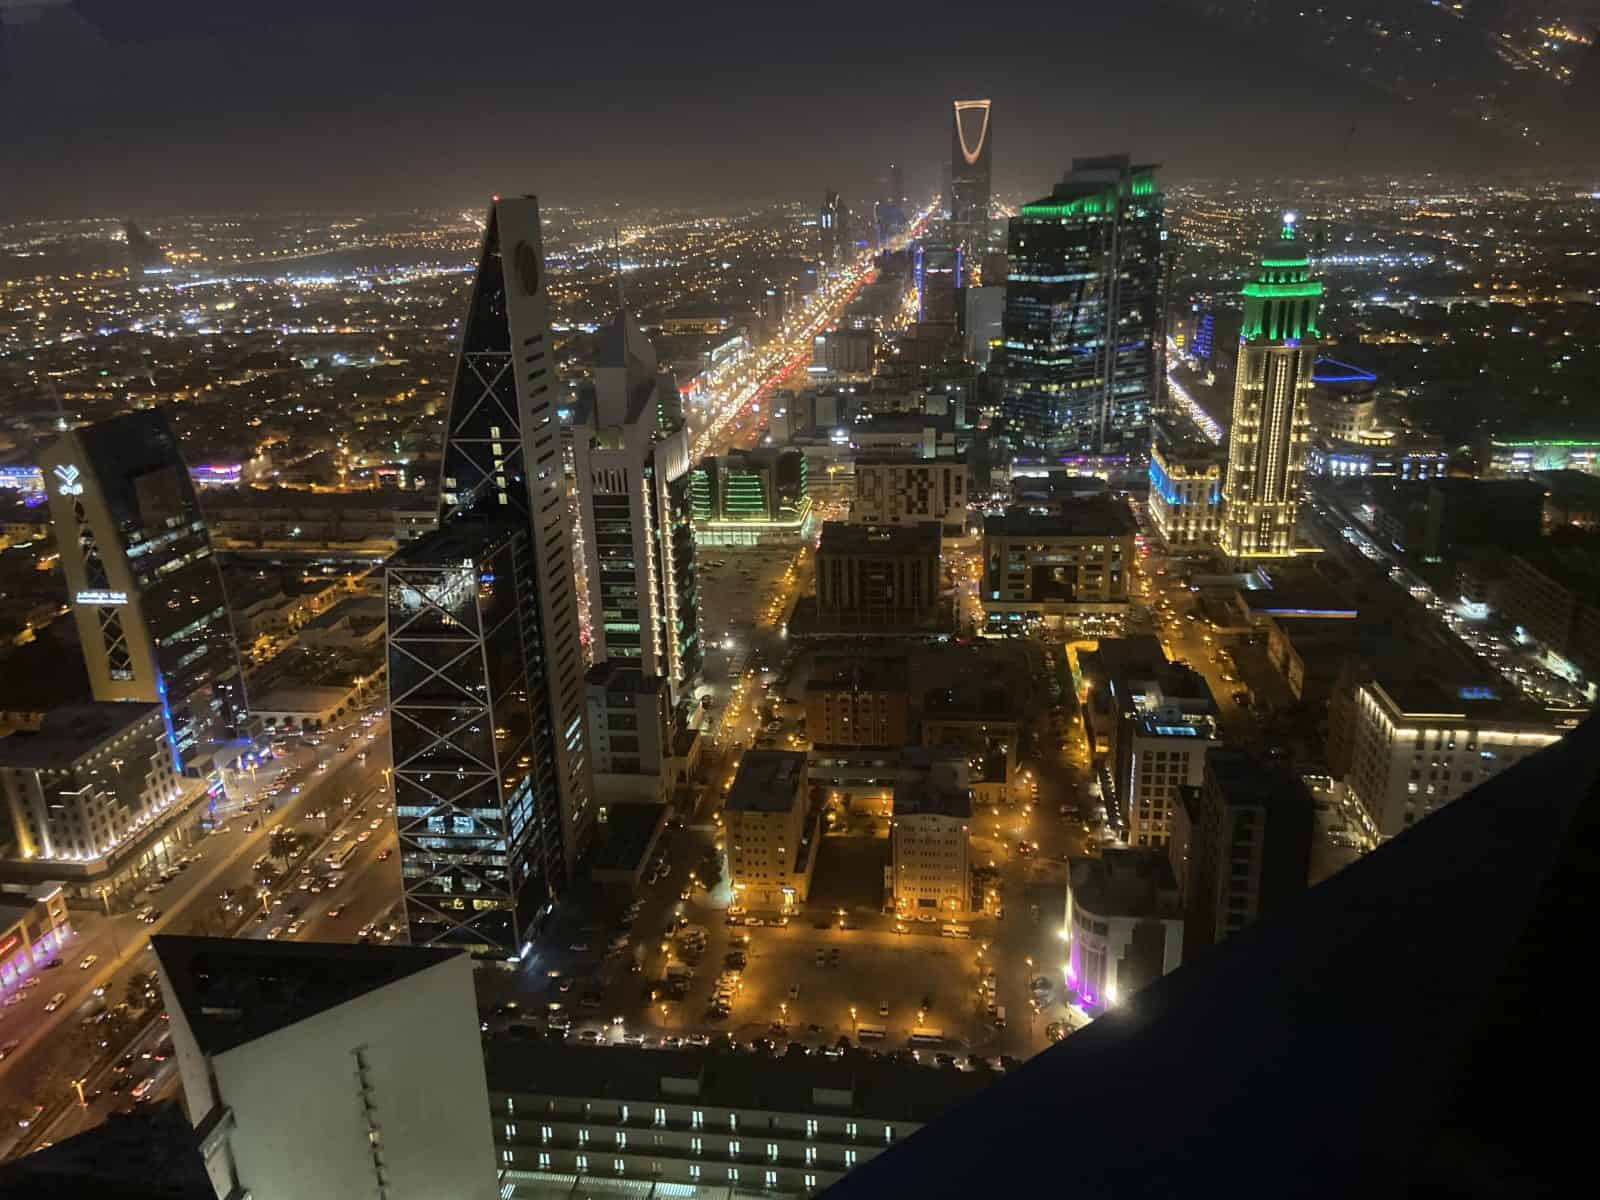 The view from atop the Al Faisaliah Centre in Riyadh, Saudi Arabia.